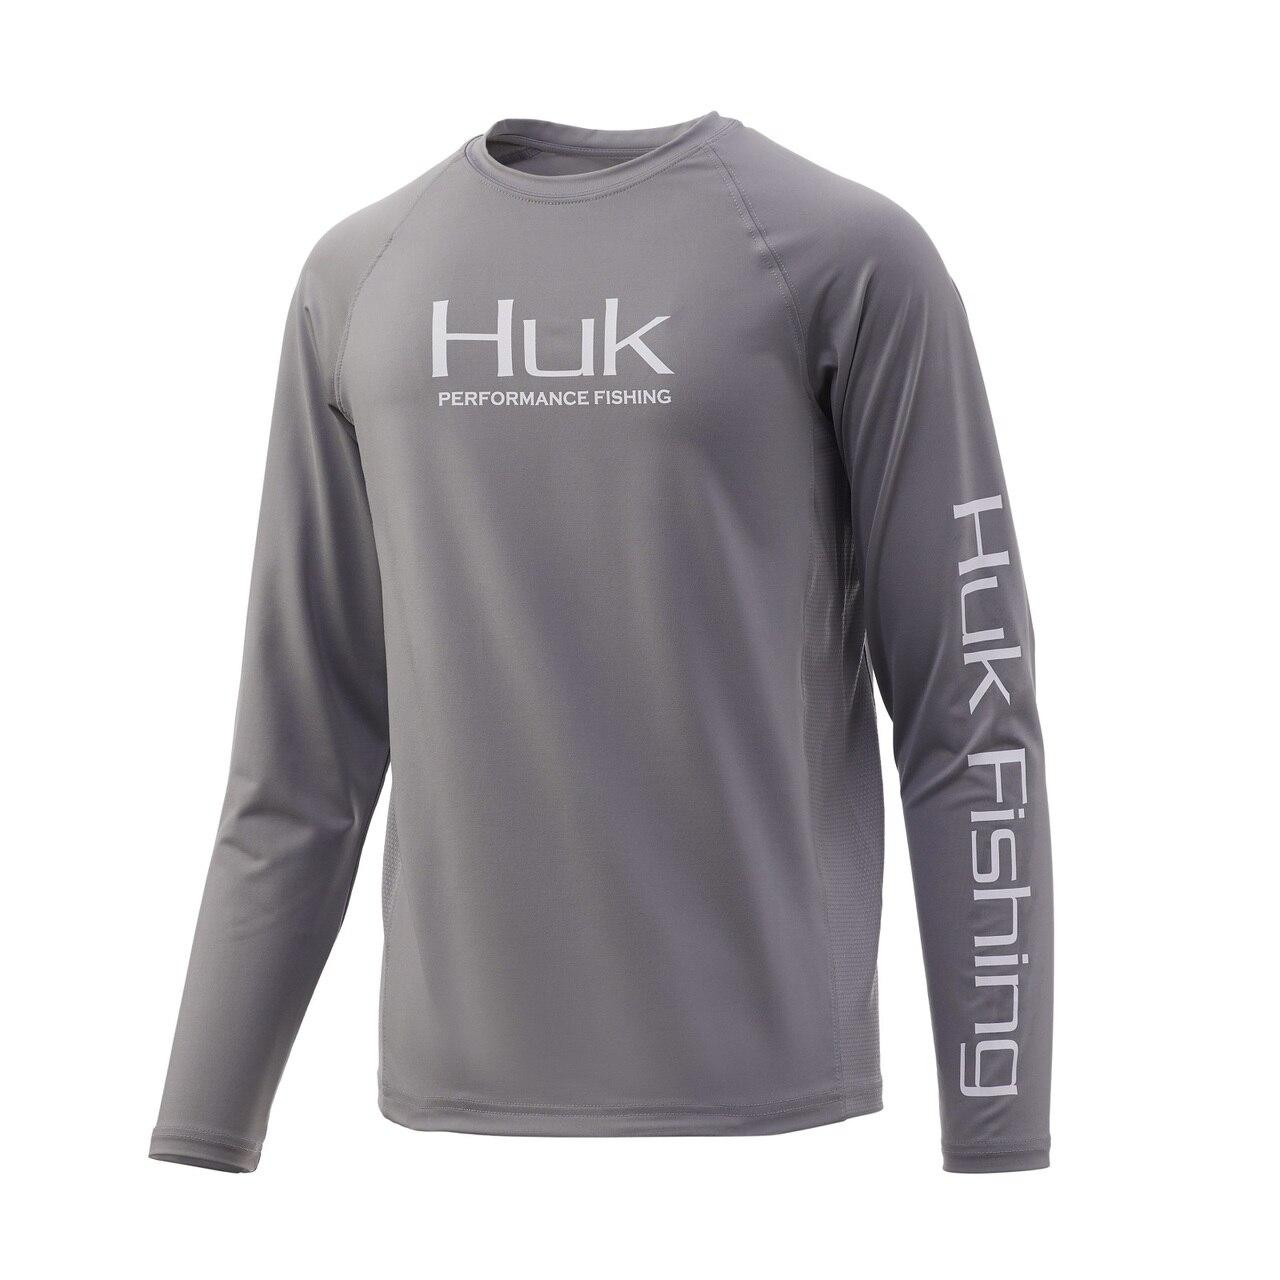 Huk Youth Pursuit Vented Long Sleeve Shirt - Sharkskin_1.jpg